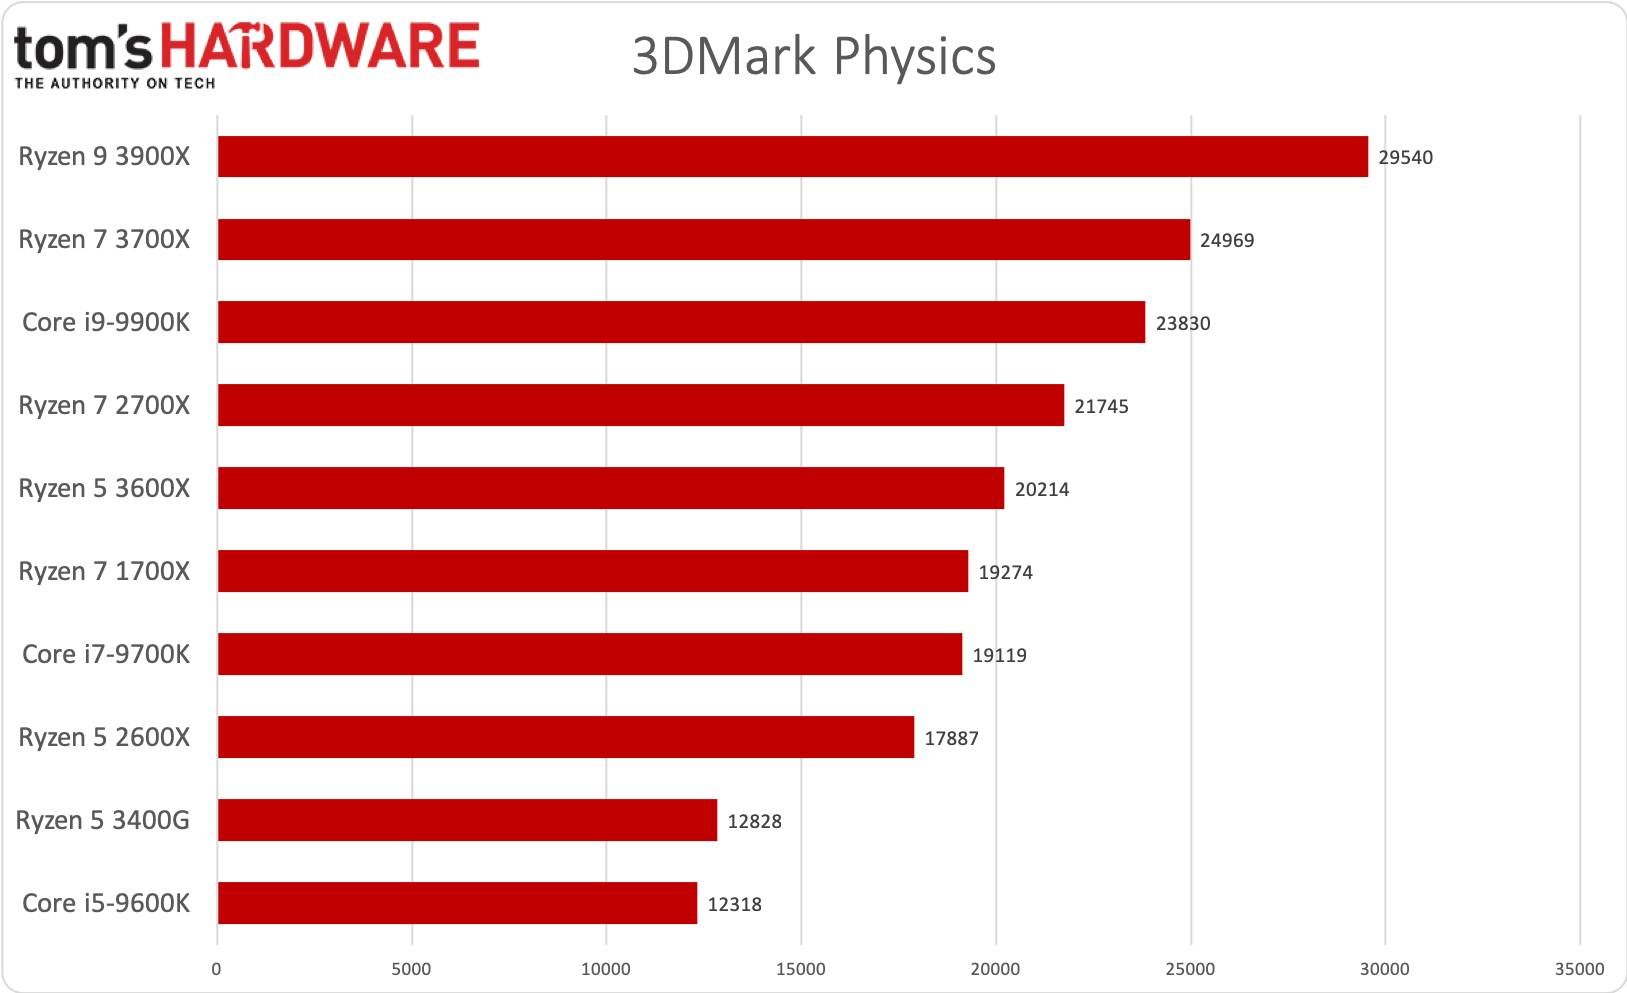 Ryzen 5 - 3DMark Physics